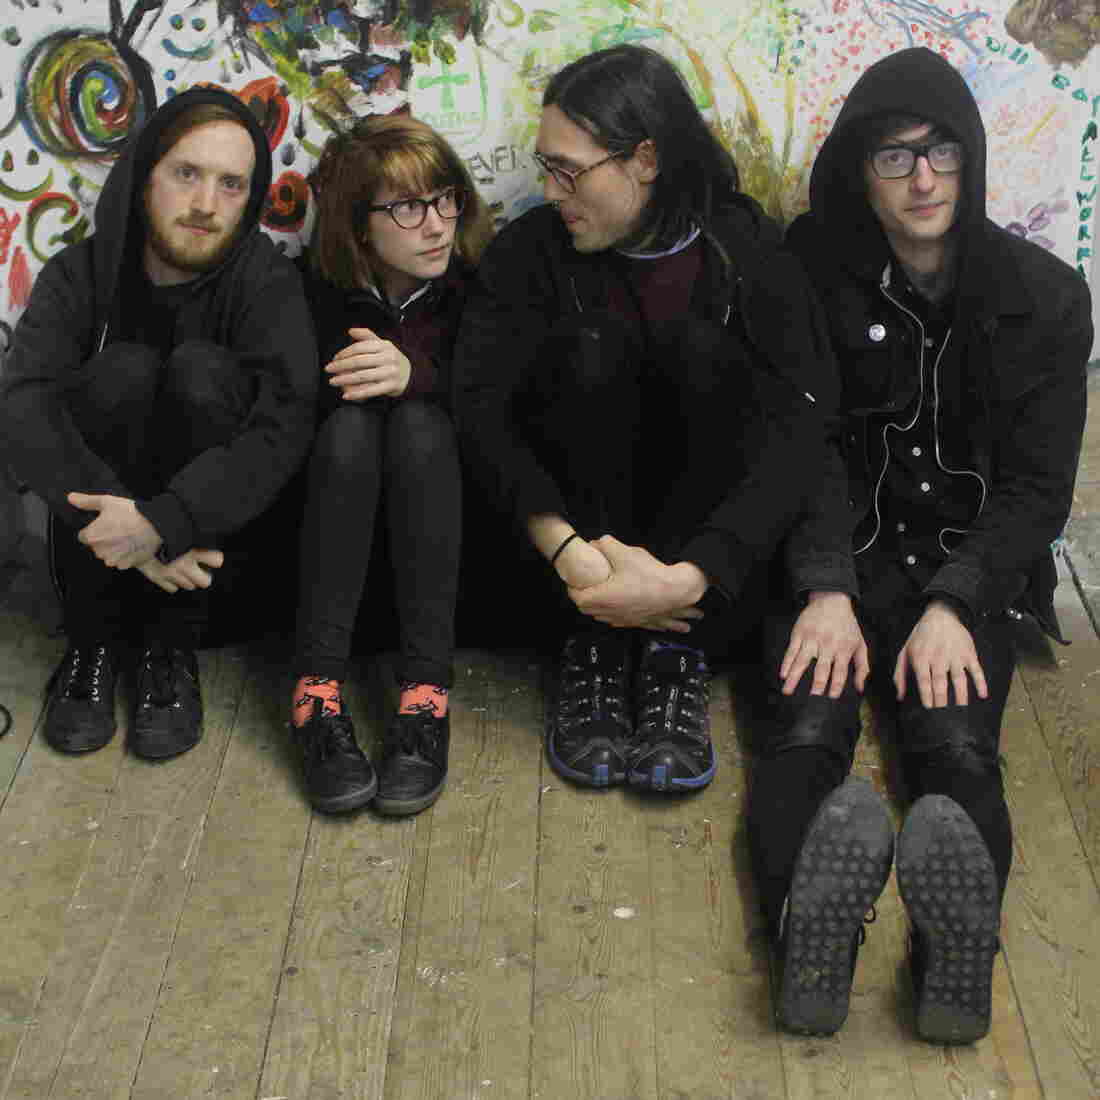 Nathan Stephens Griffin, Naomi Griffin, Daniel Ellis and Jc Cairns of the British punk band Martha.